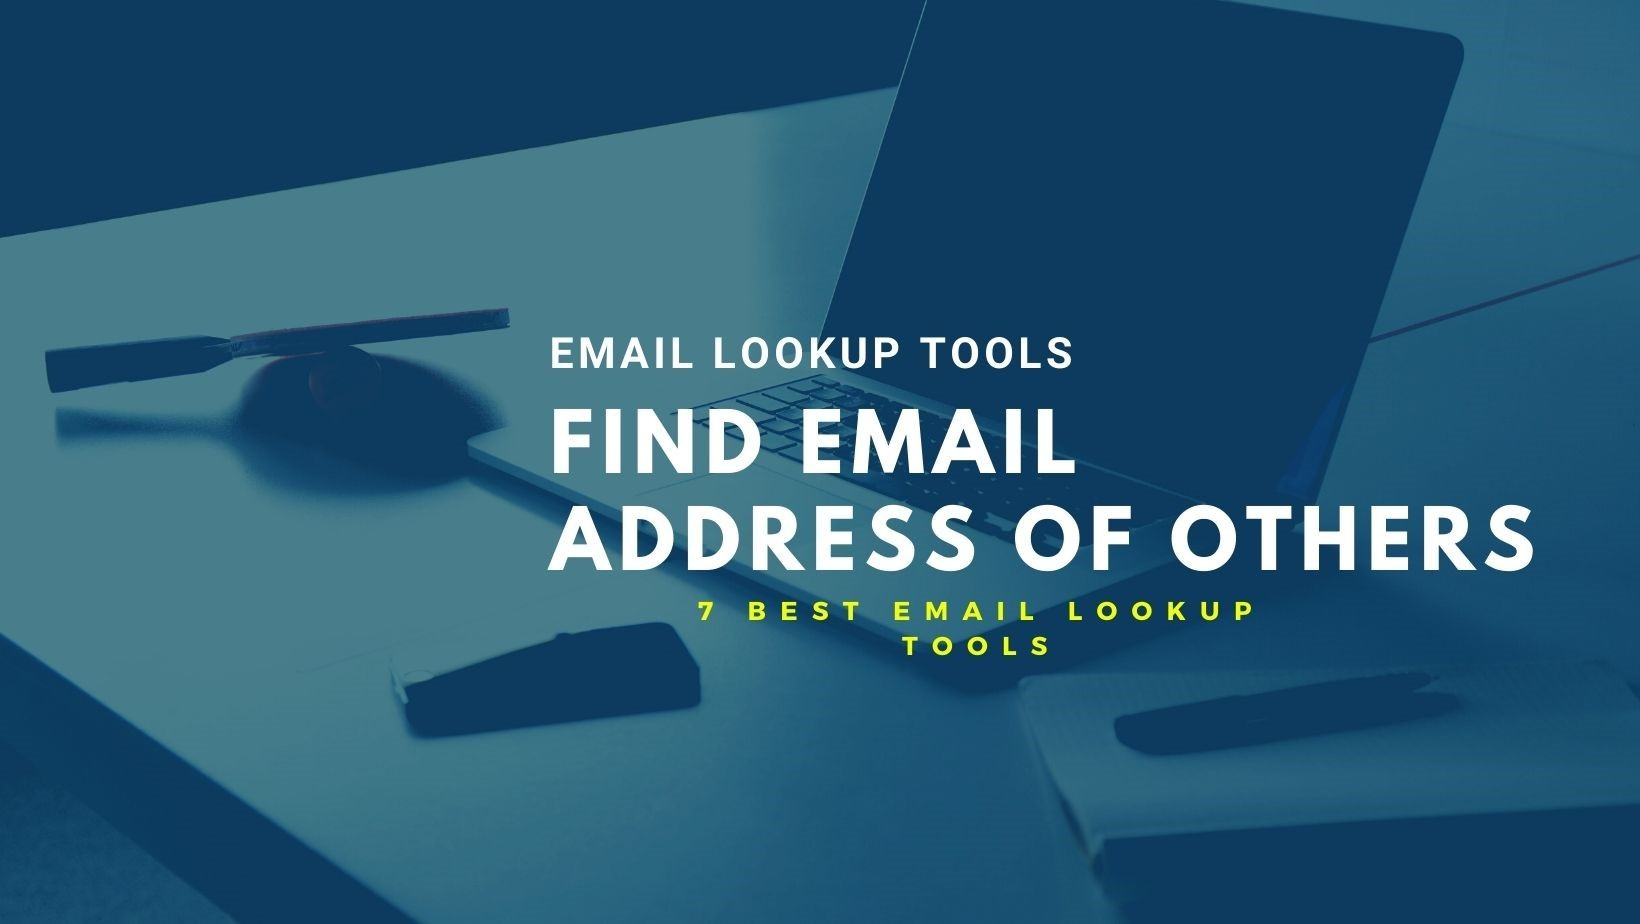 Email lookup